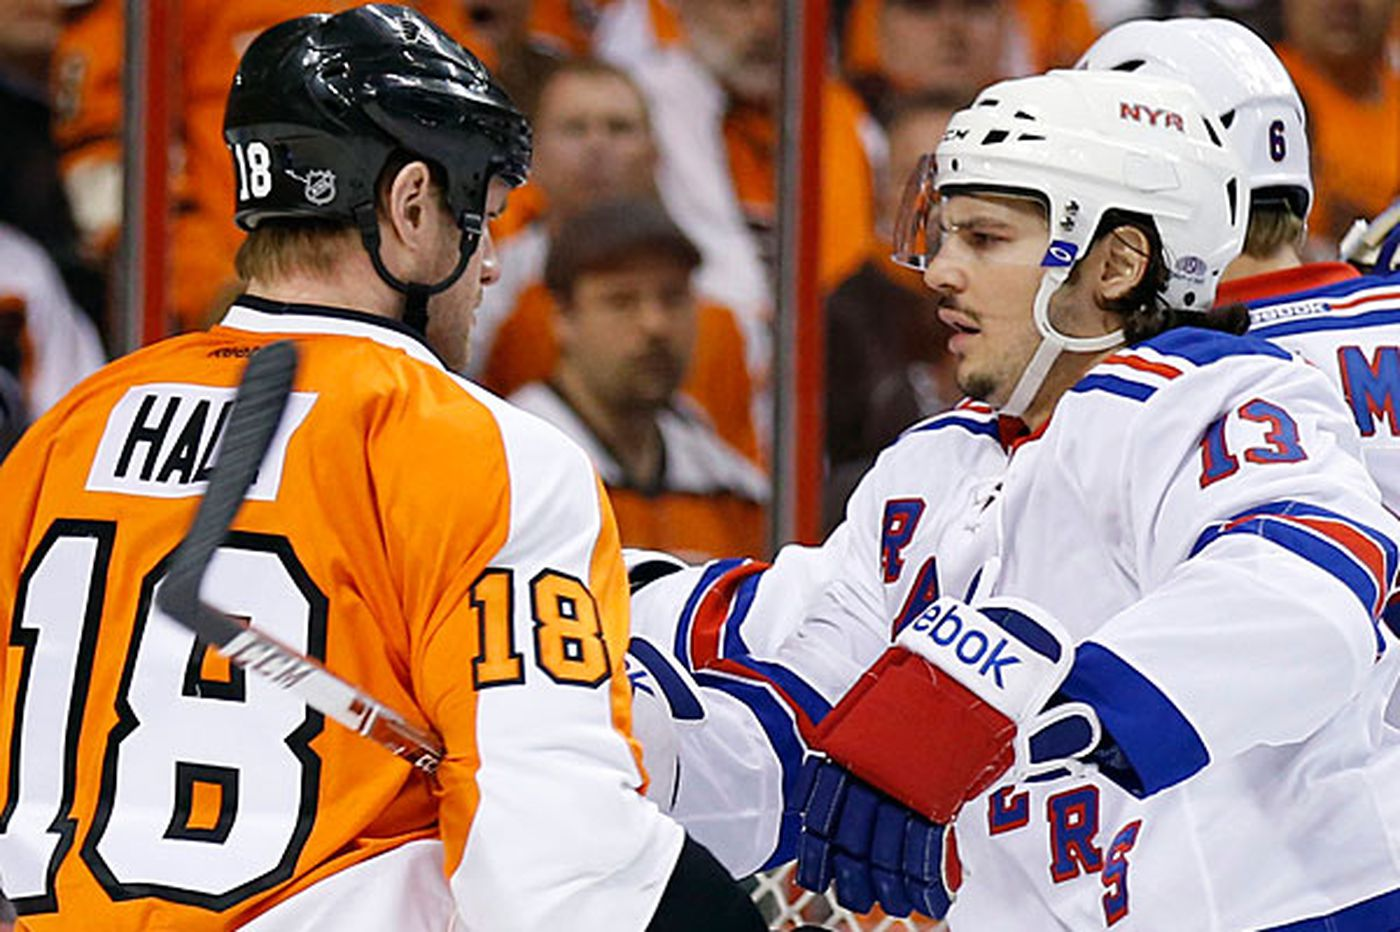 Former Flyer Carcillo effective vs. his old team